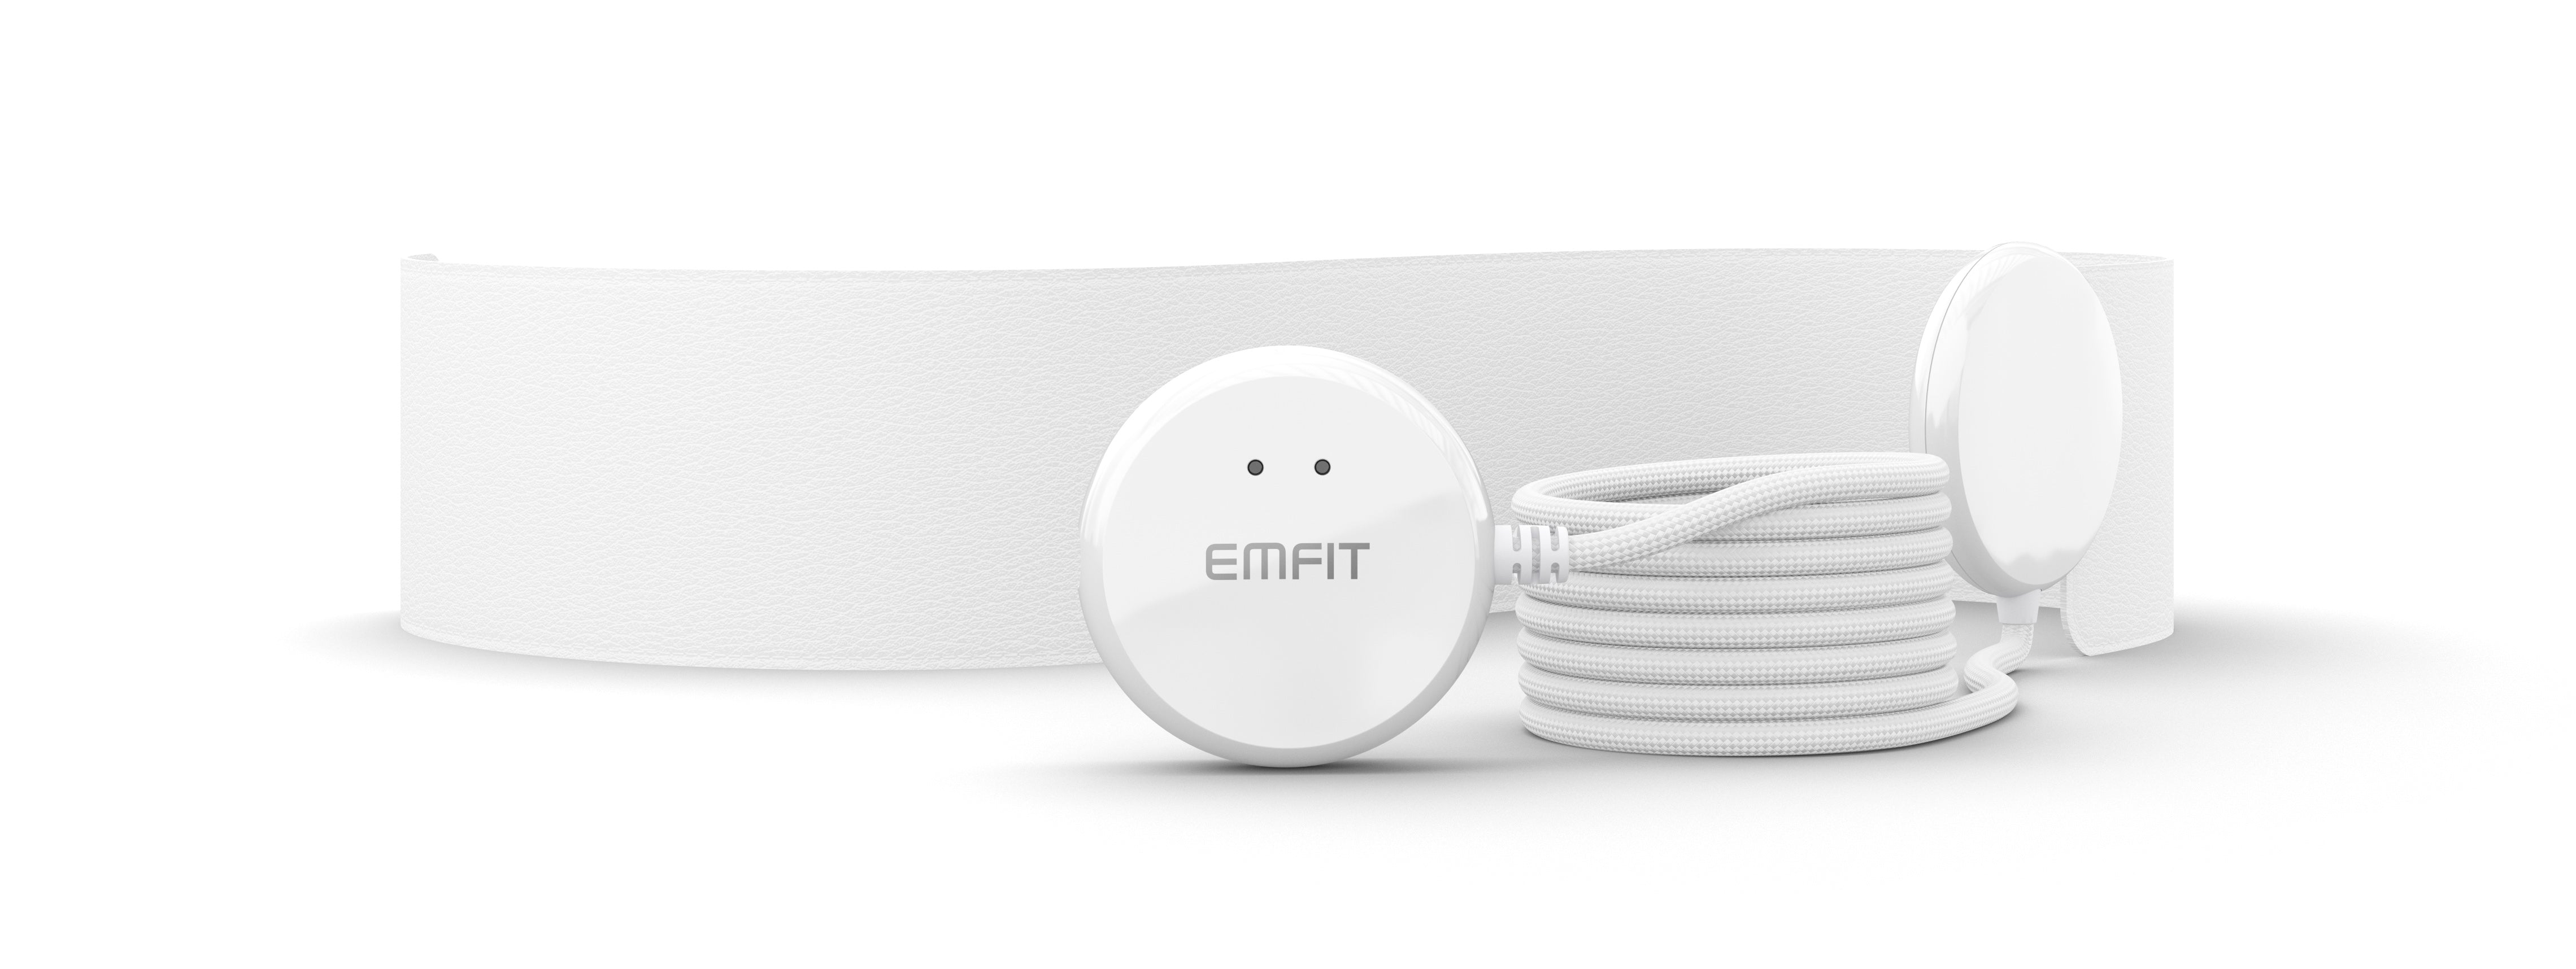 EMFIT QS+CARE™ – health, sleep, bed exit & occupancy monitor for senior care